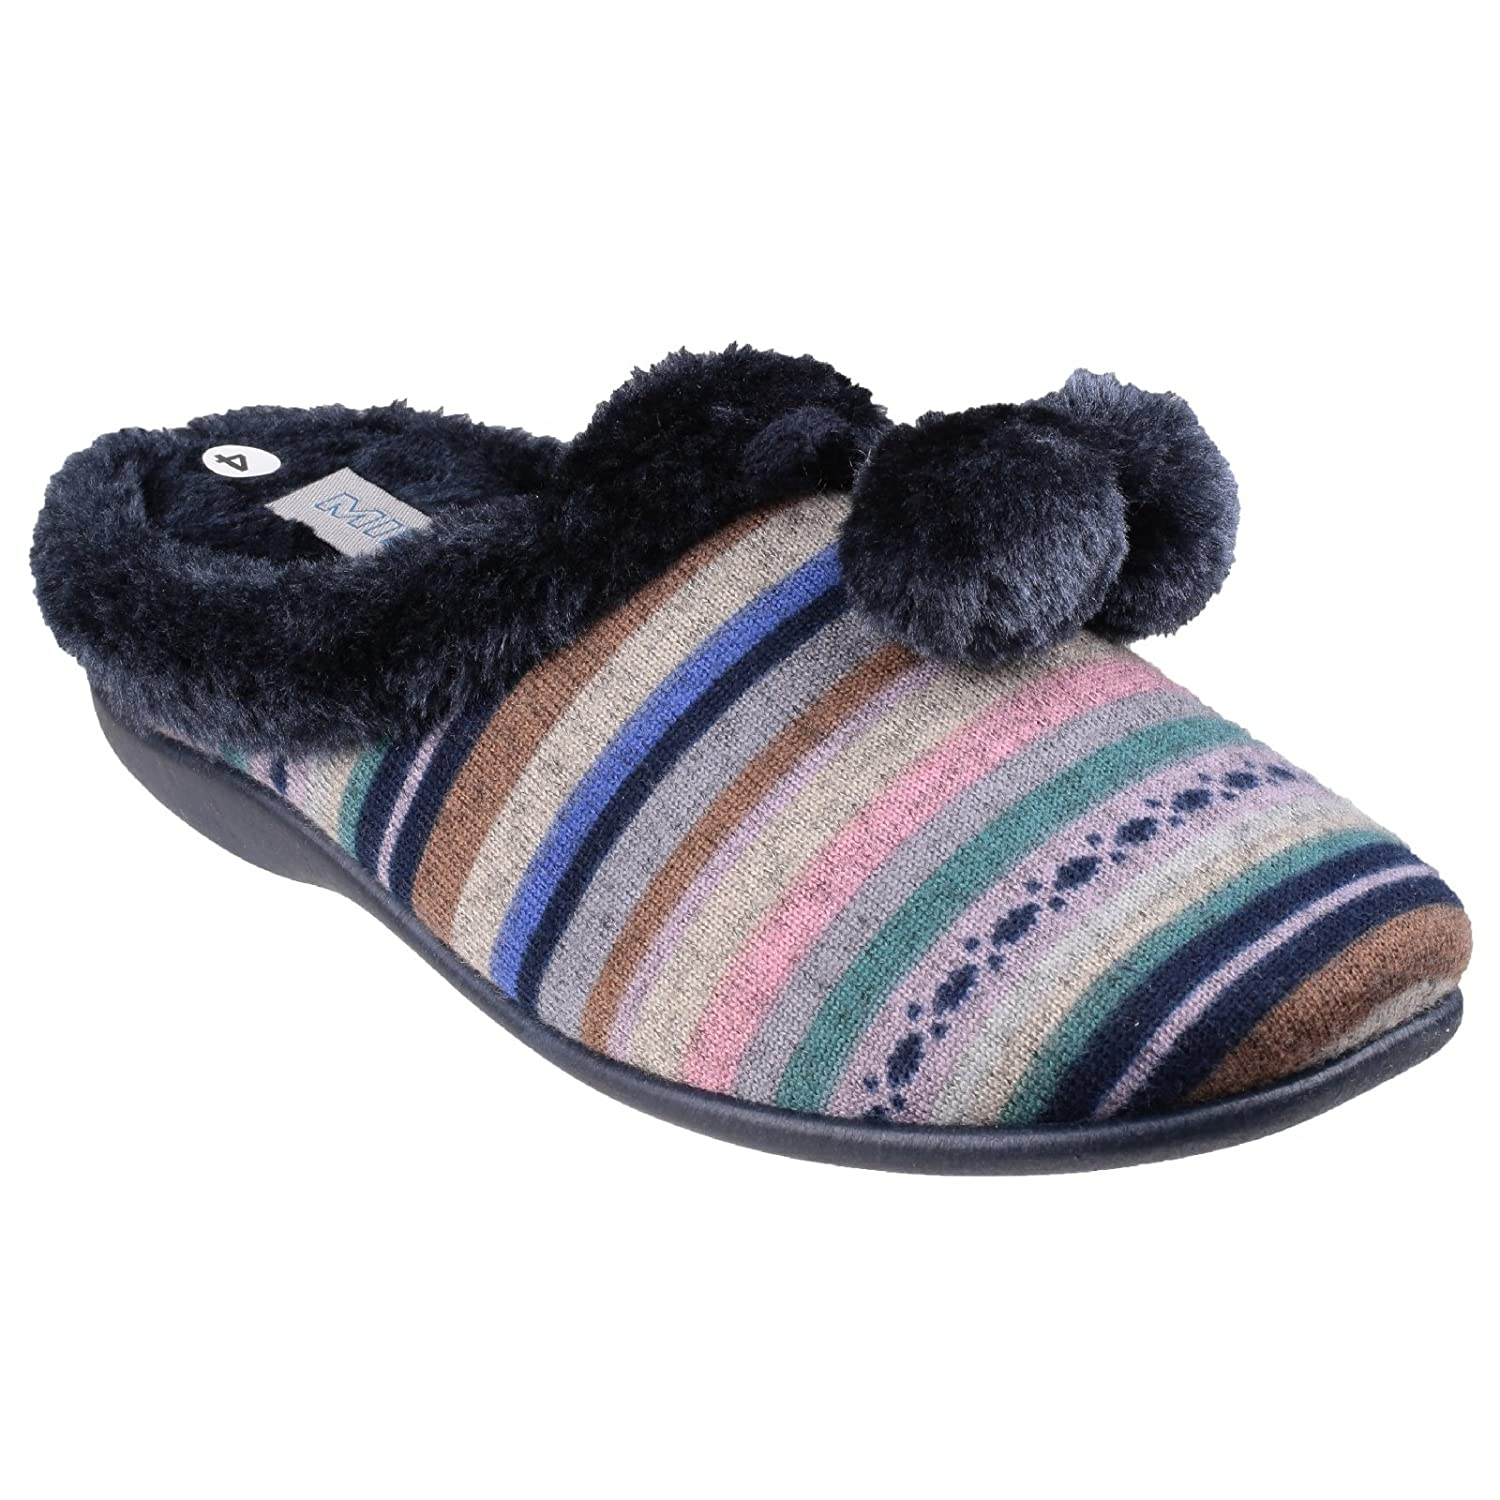 Mirak Chabilis - - Chaussons 15136 mules mules - Femme Blue 81511a0 - latesttechnology.space